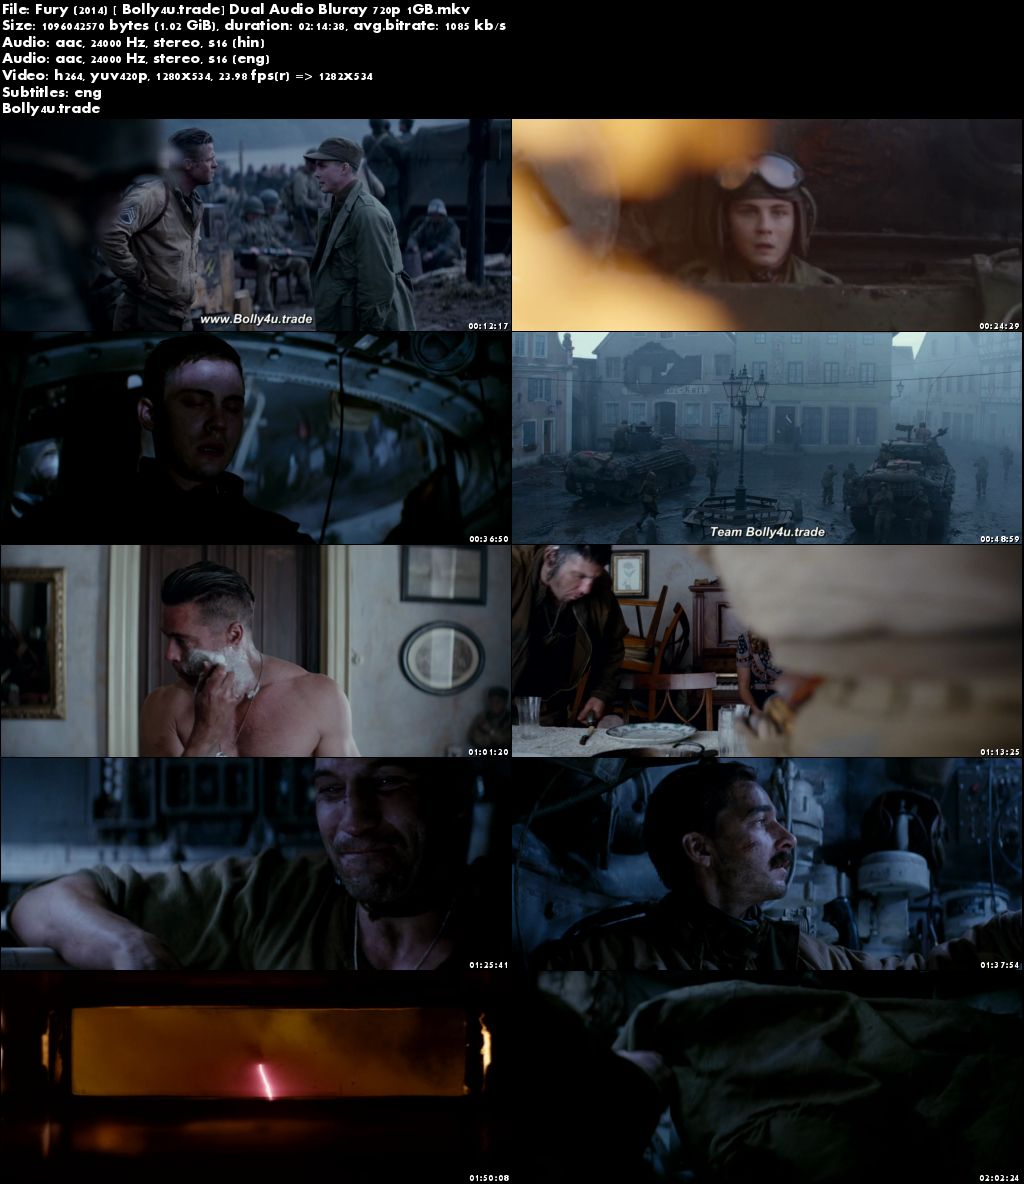 Fury 2014 BluRay 1GB Hindi Dubbed Dual Audio ORG 720p Download